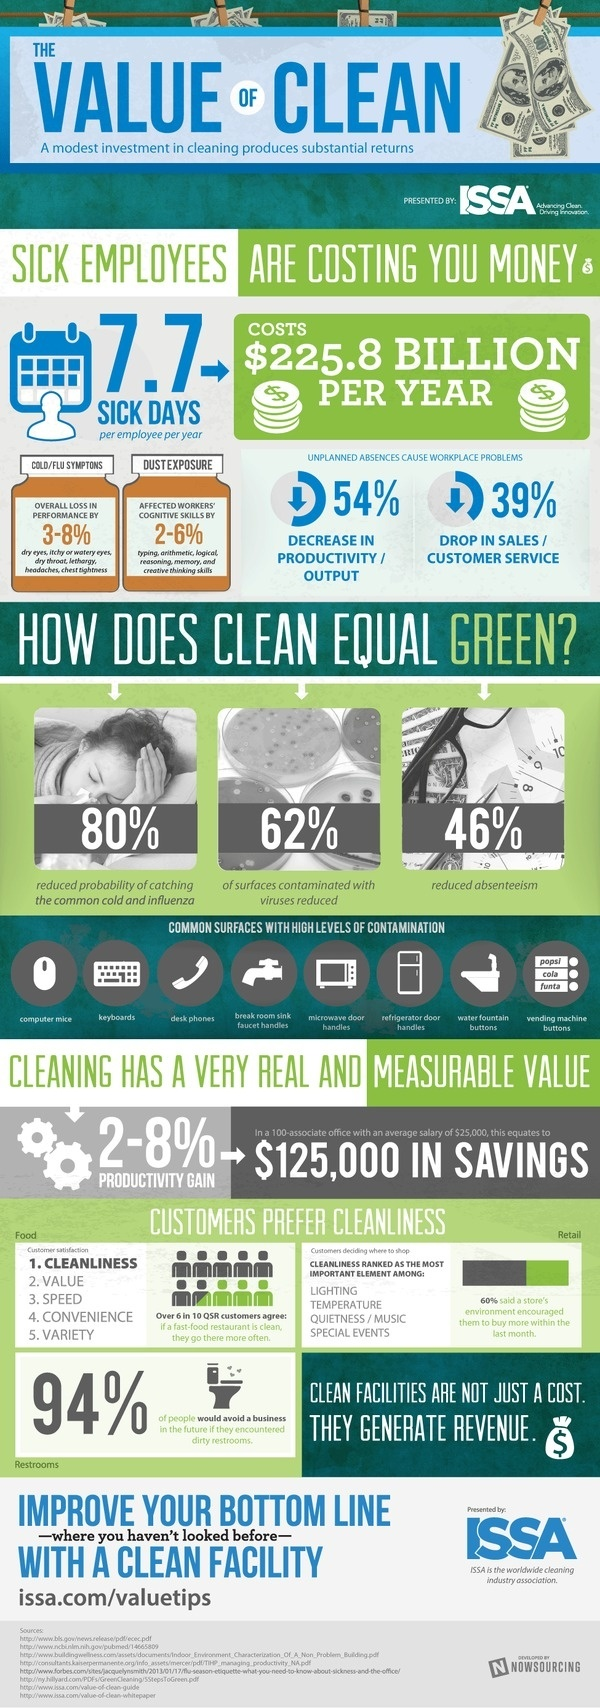 ISSA - Value of Clean [INFOGRAPHIC] #saving #business #infographic #clean #cost